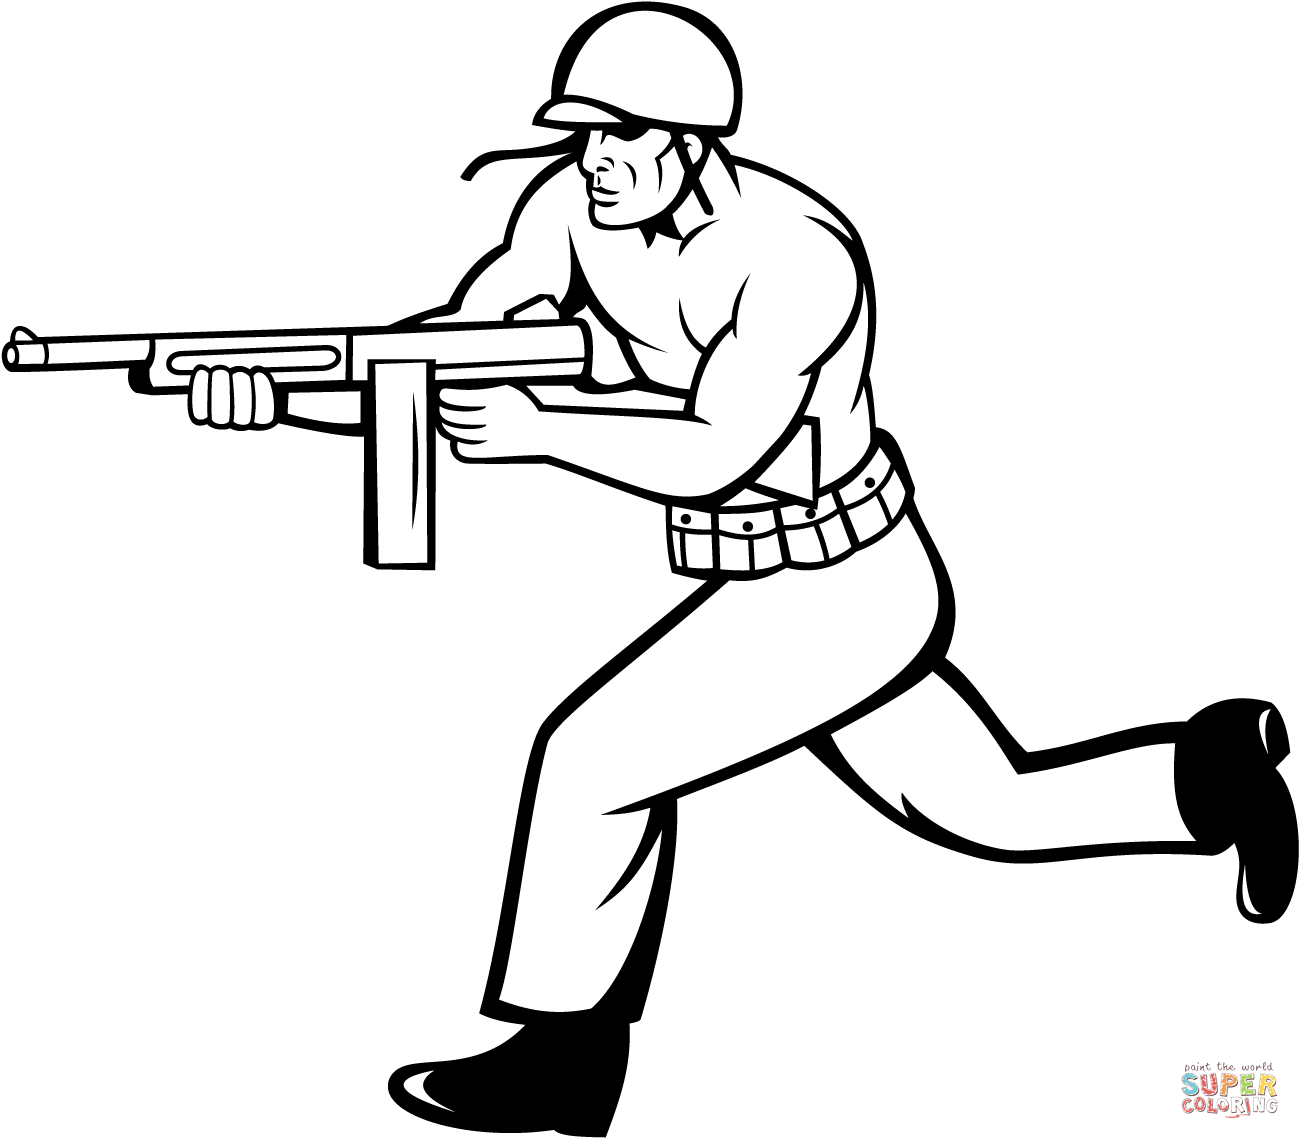 Sol R Running With Tommy Gun Coloring Page